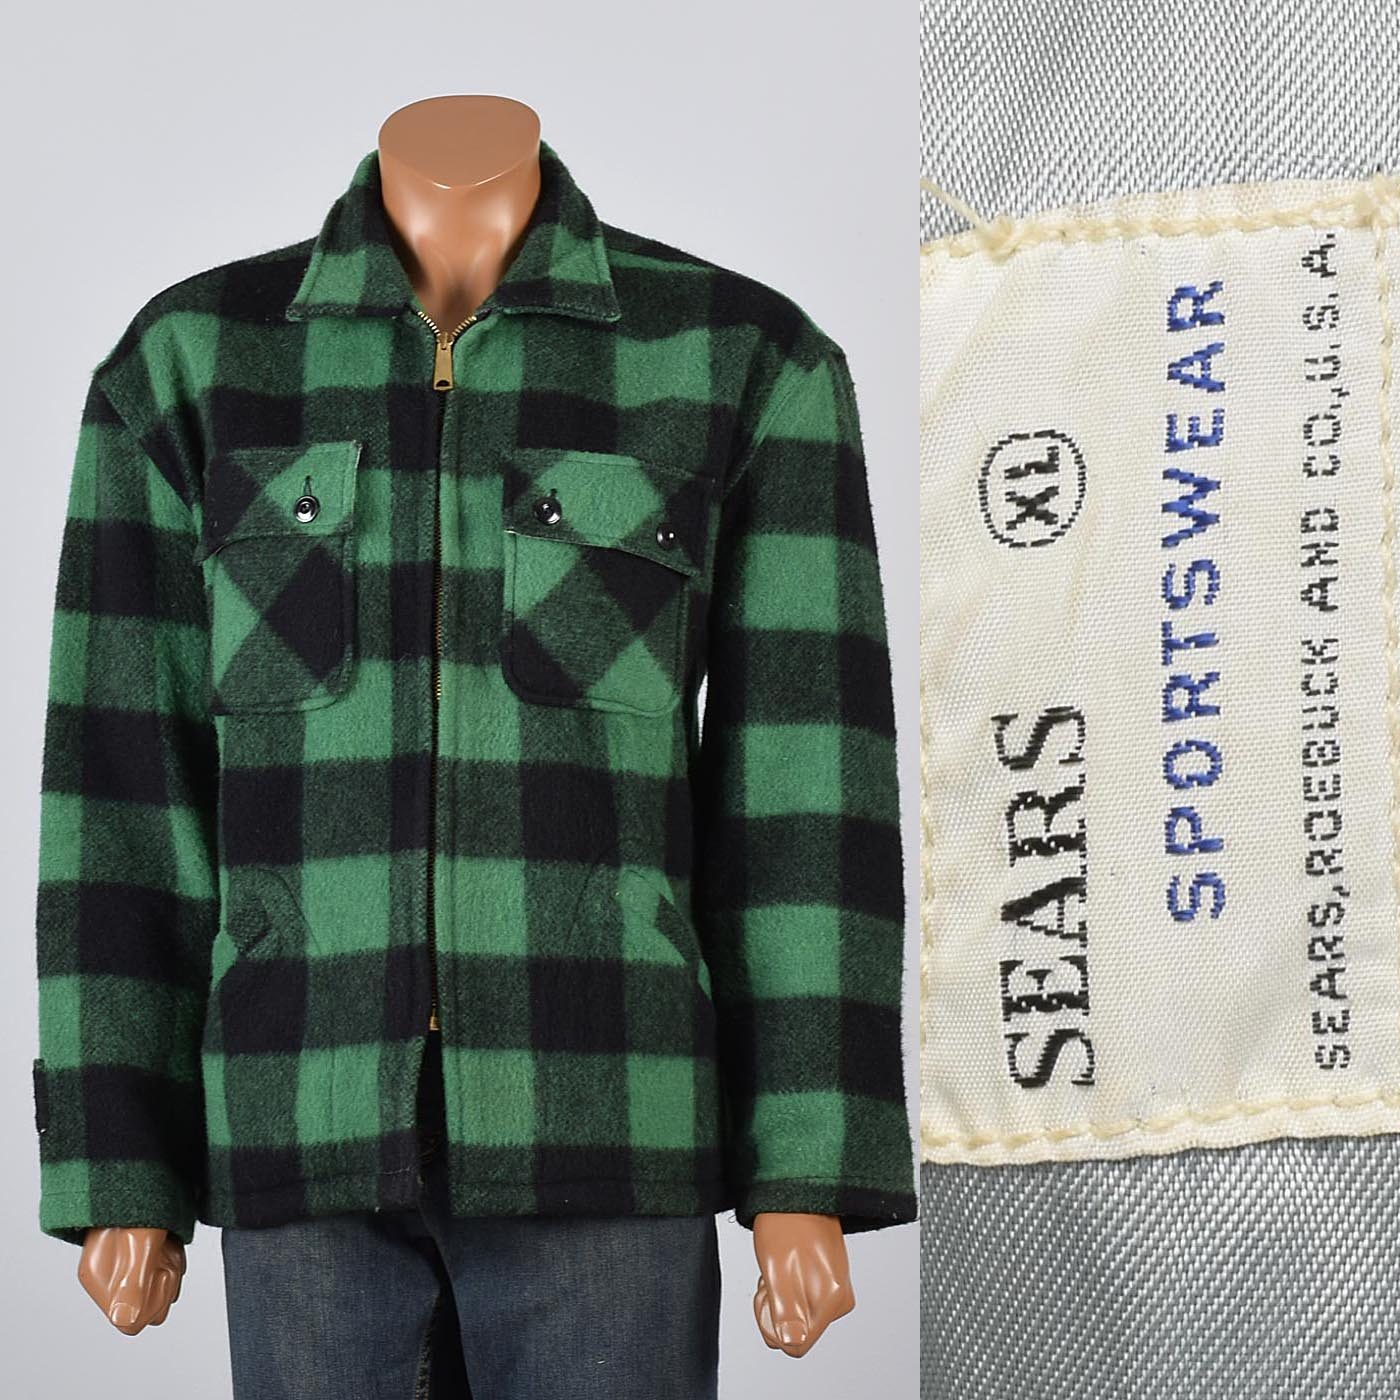 1950s Mens Green Amp Black Buffalo Check Wool Chore Jacket